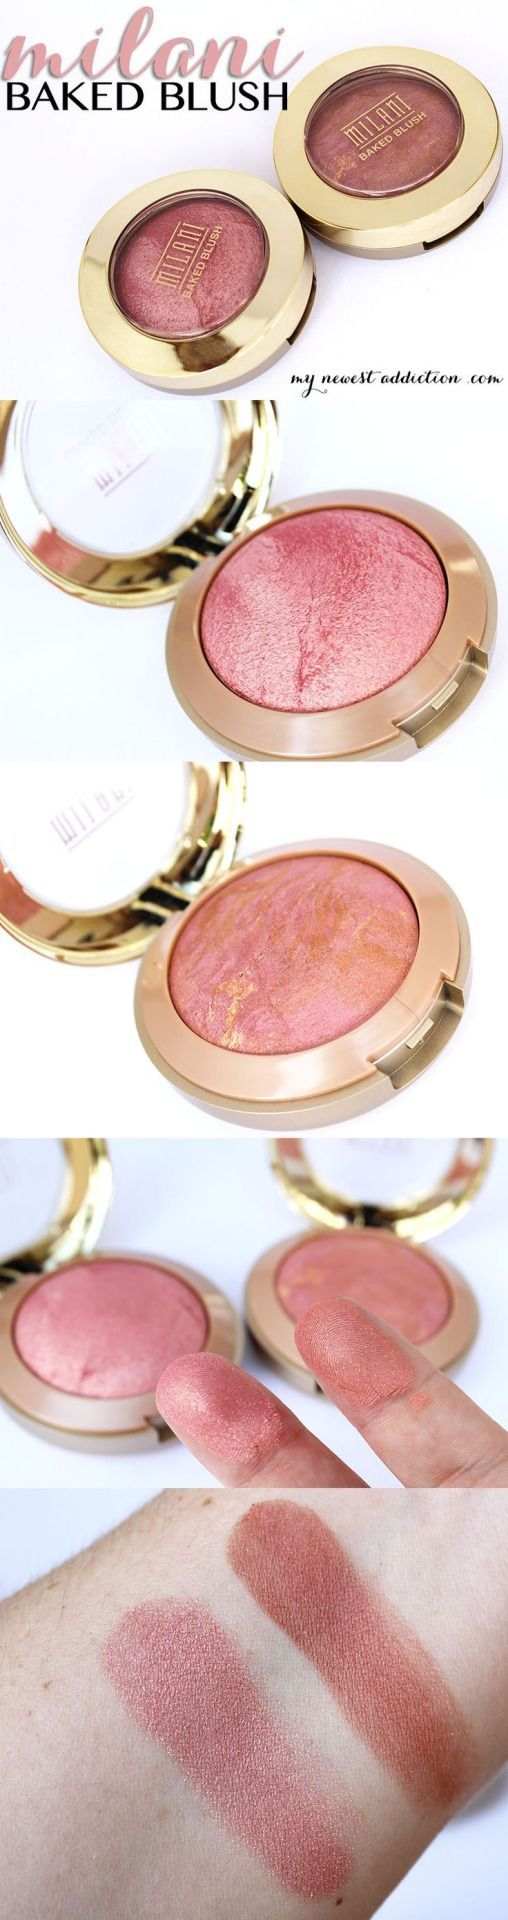 This may be a a drug store brand, but this blush is by far my favorite blush on the market